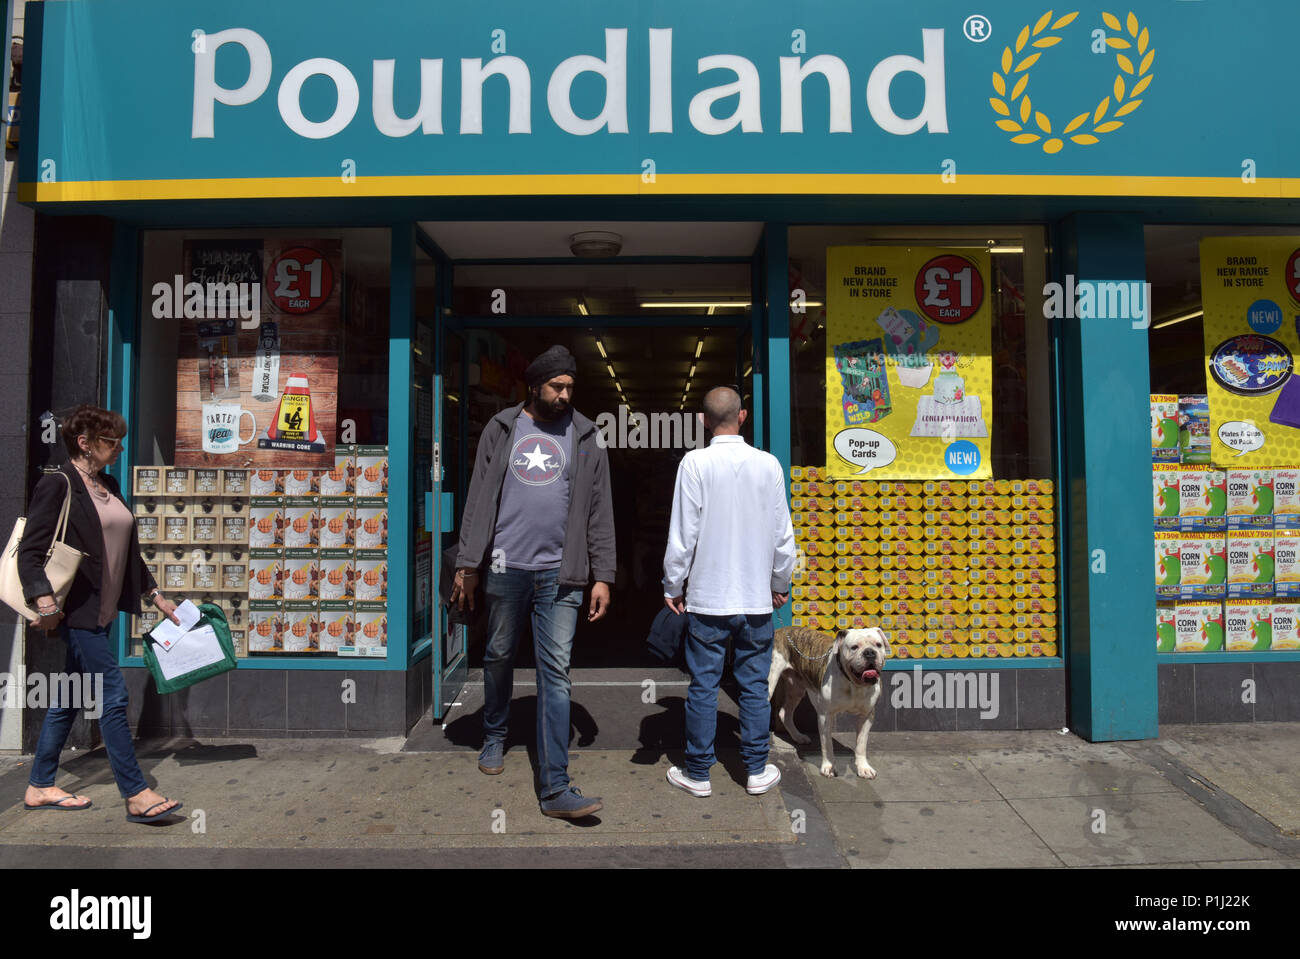 People and shoppers walk past the discount store Poundland on Camden High Street in North London. Poundland has done well during austerity. - Stock Image